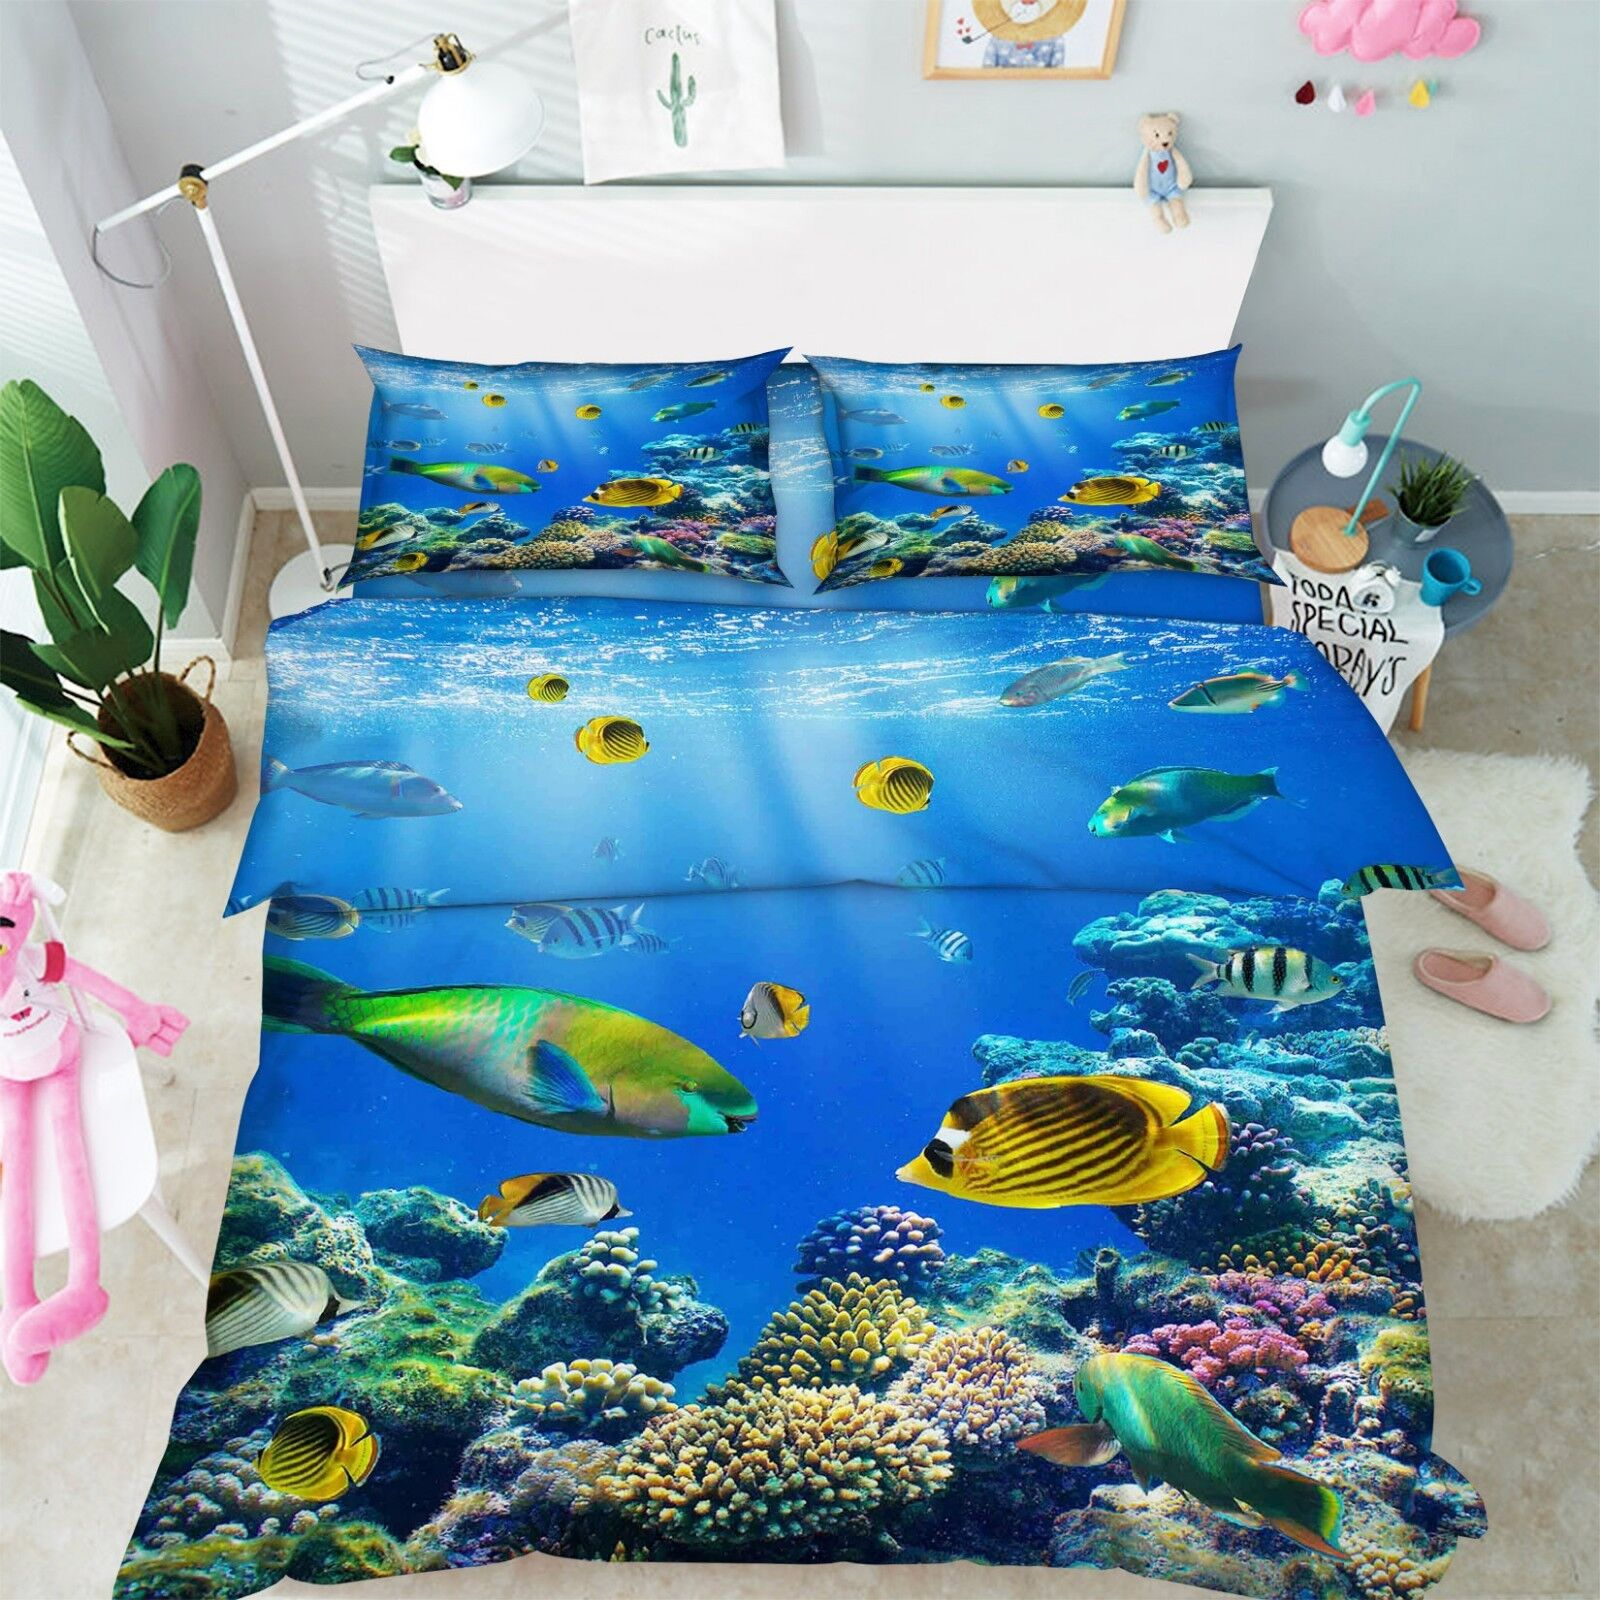 3D Fish Naturally 79 Bed Pillowcases Quilt Duvet Cover Set Single Queen King CA